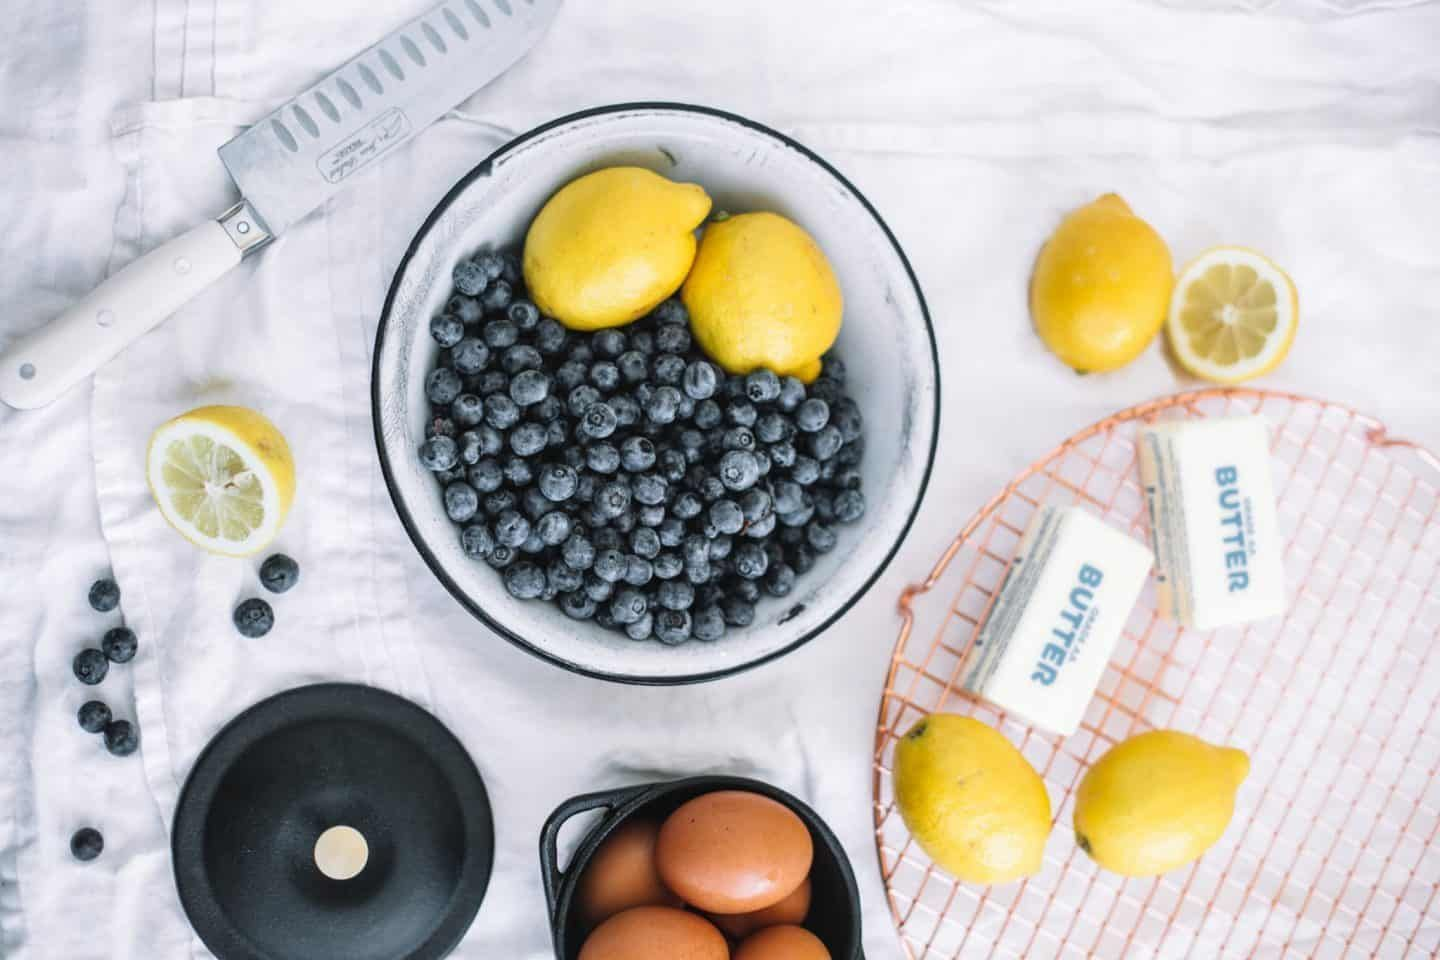 Lemon Blueberry Cake with Lemon Buttercream #lemonbuttercream Lemon Blueberry Cake with Lemon Buttercream #lemonbuttercream Lemon Blueberry Cake with Lemon Buttercream #lemonbuttercream Lemon Blueberry Cake with Lemon Buttercream #lemonbuttercream